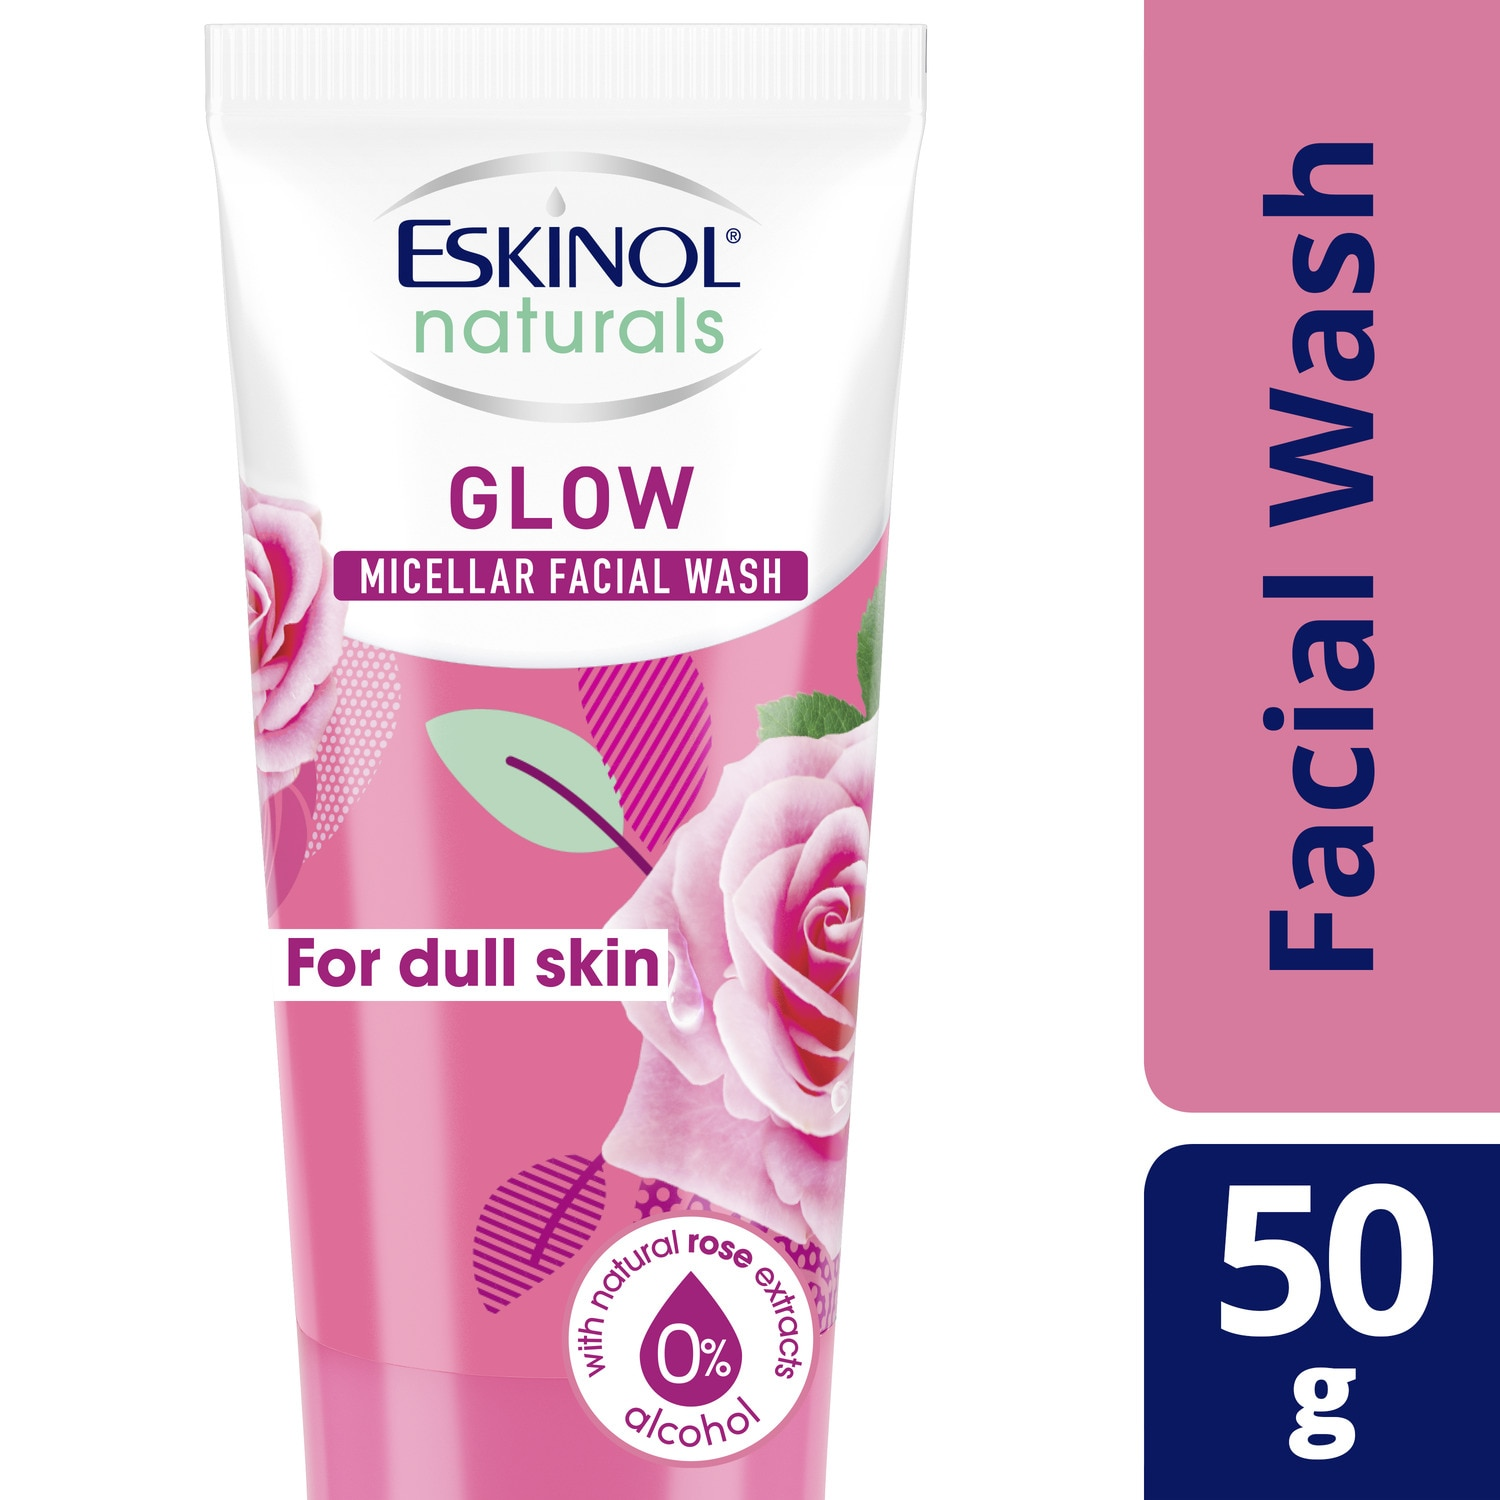 ESKINOLNaturals Micellar Facial Wash Glow with Natural Rose Extracts 50g,For WomenFree (1) Watsons Dermaction Plus Antiacne St20x2 for every purchase of Skin Care products